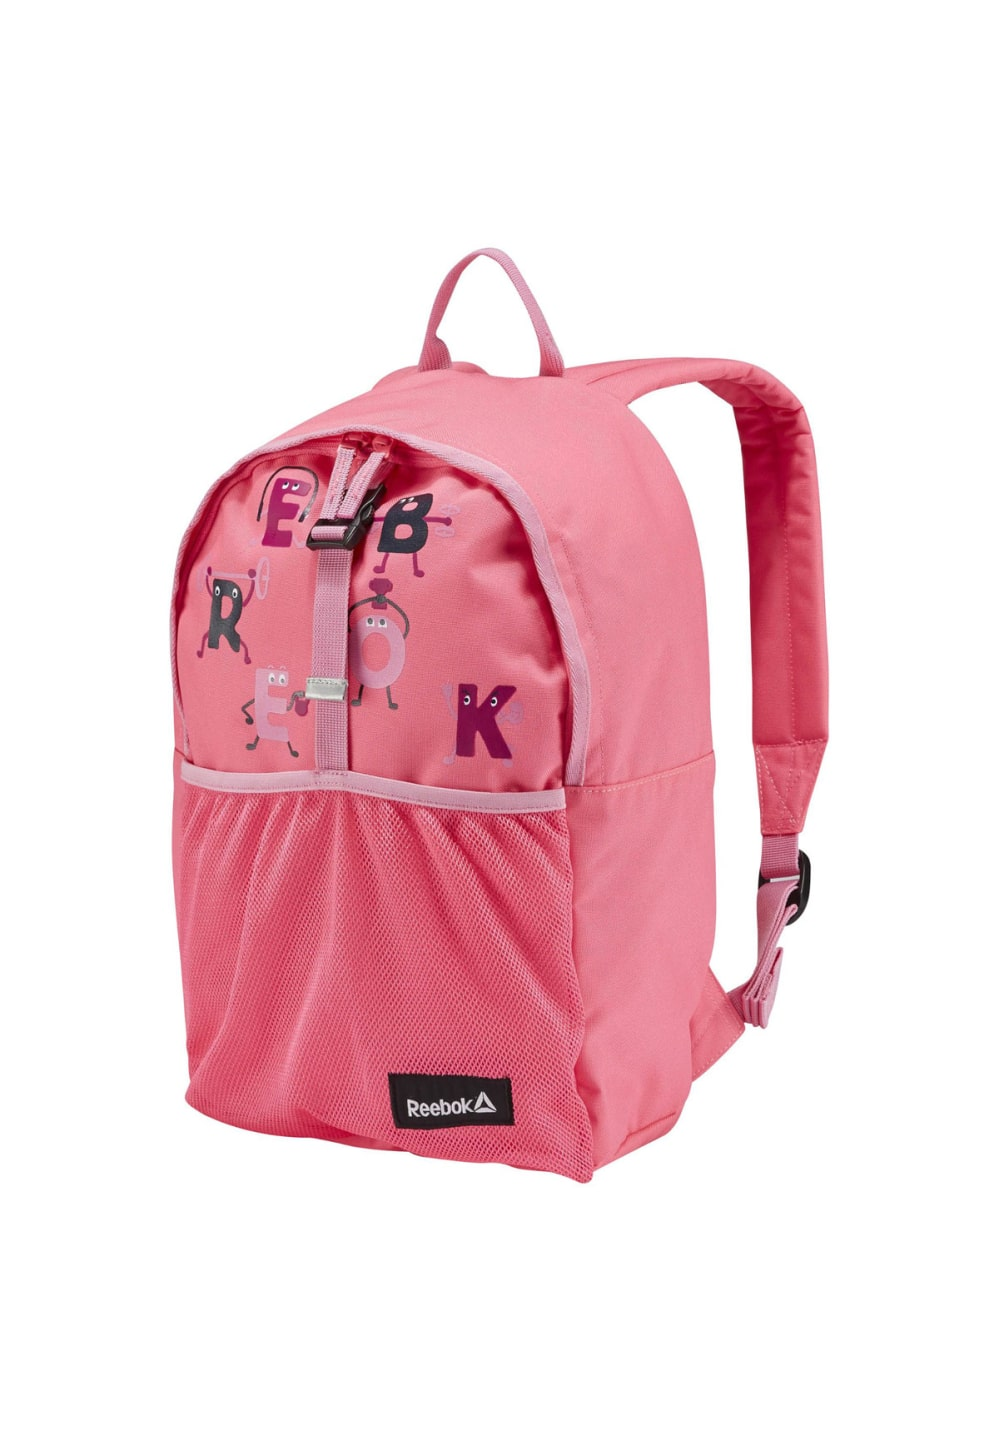 Reebok Kids U Lunch Set Backpack - Backpacks - Pink